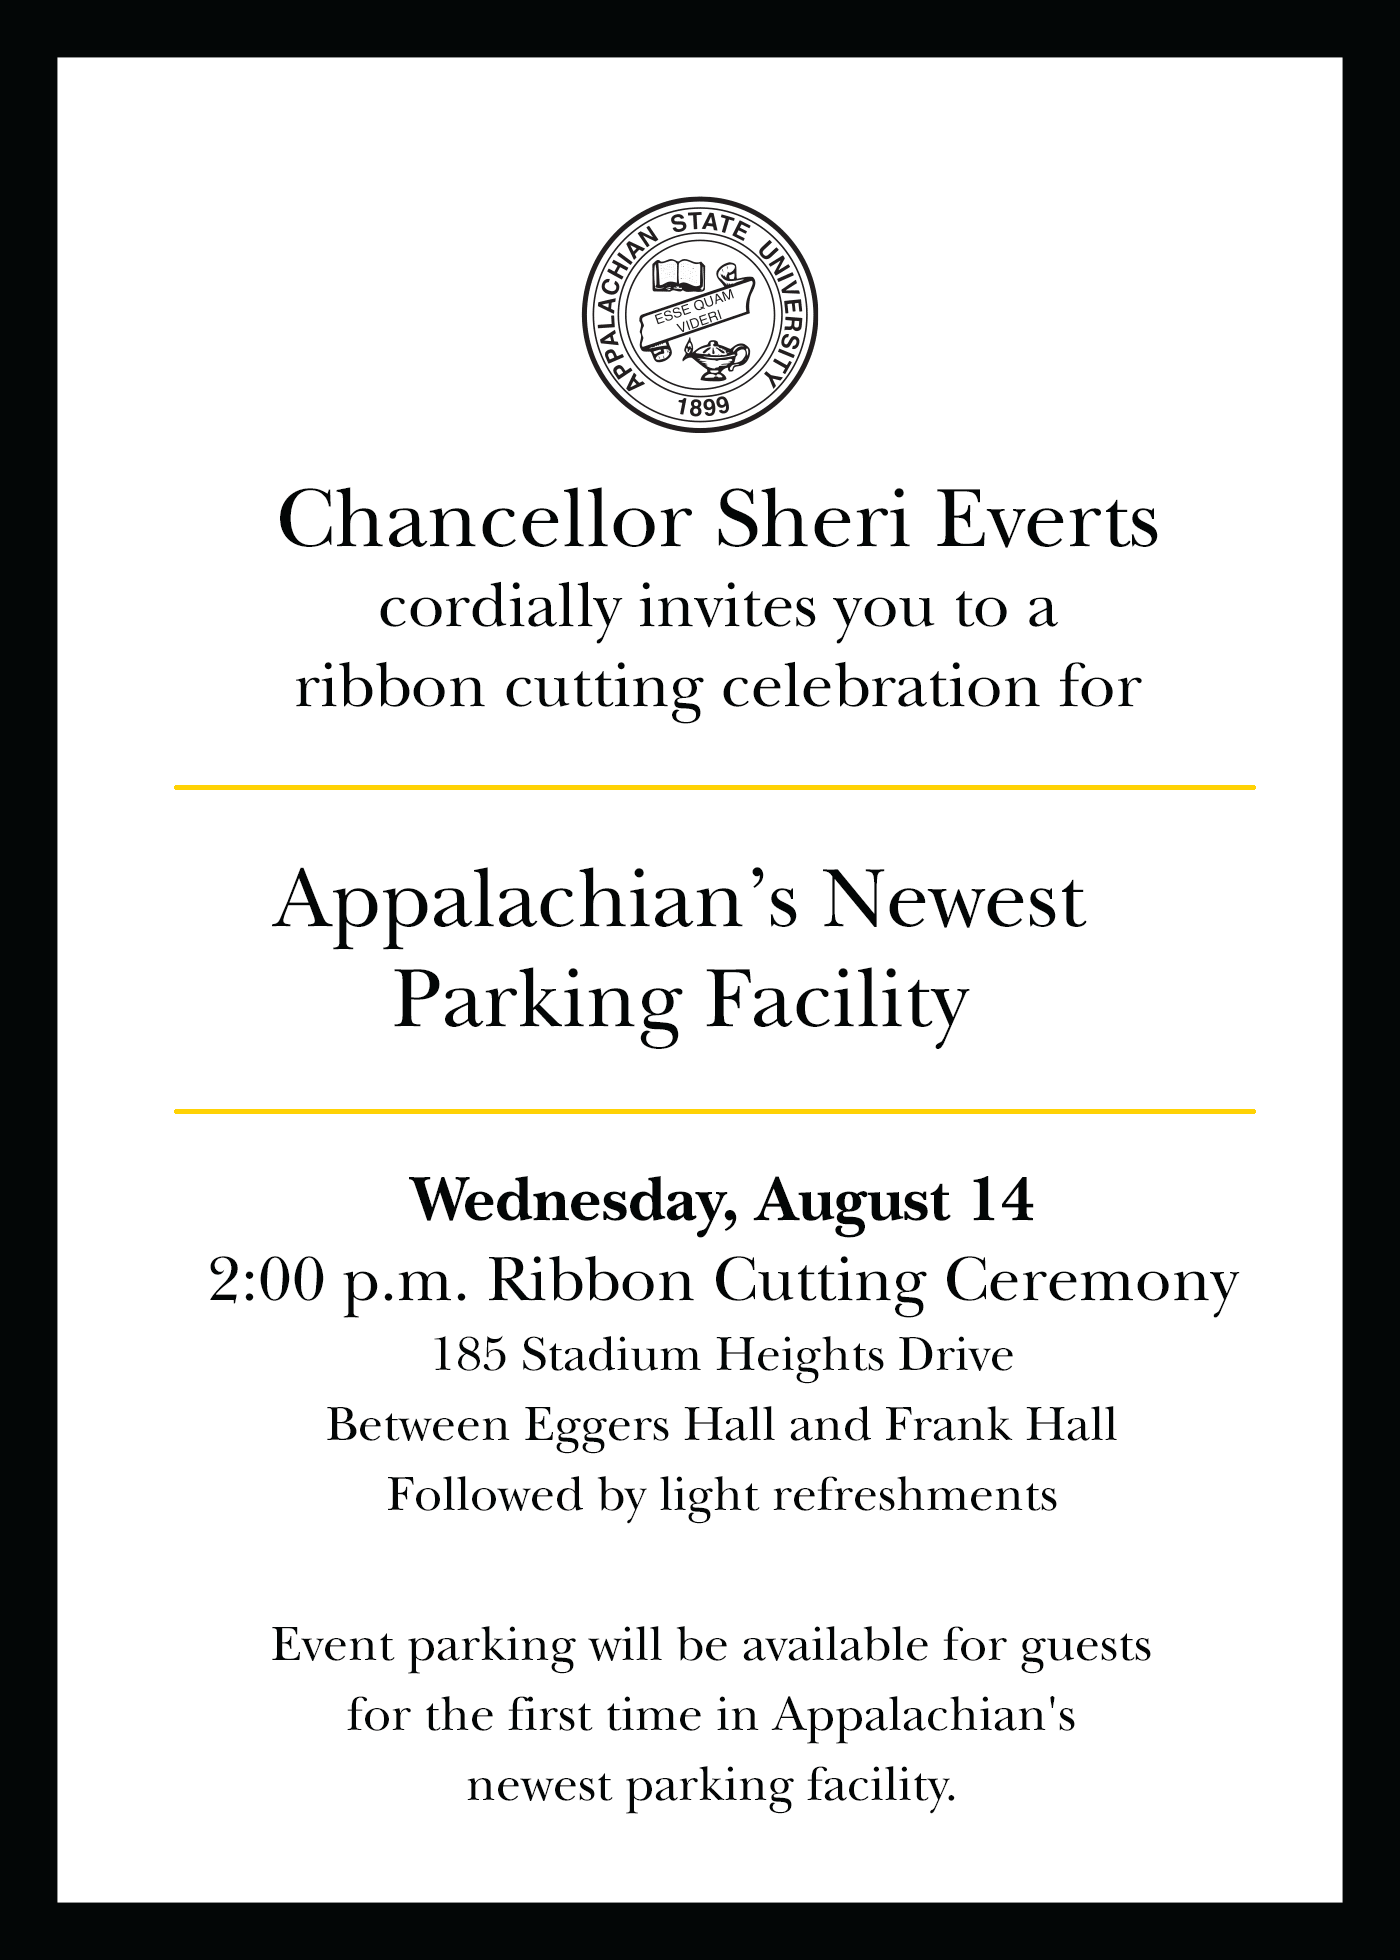 Chancellor Sheri Everts cordially invites     you to a ribbon cutting celebration for Appalachian's Newest Parking     Facility. Wednesday, August 14 2:00 p.m. Ribbon Cutting Ceremony:     185 Stadium Heights Drive Between Eggers Hall and Frank Hall.     Followed by light refreshments. Event parking will be available for     guests for the first time in Appalachian's newest parking facility.